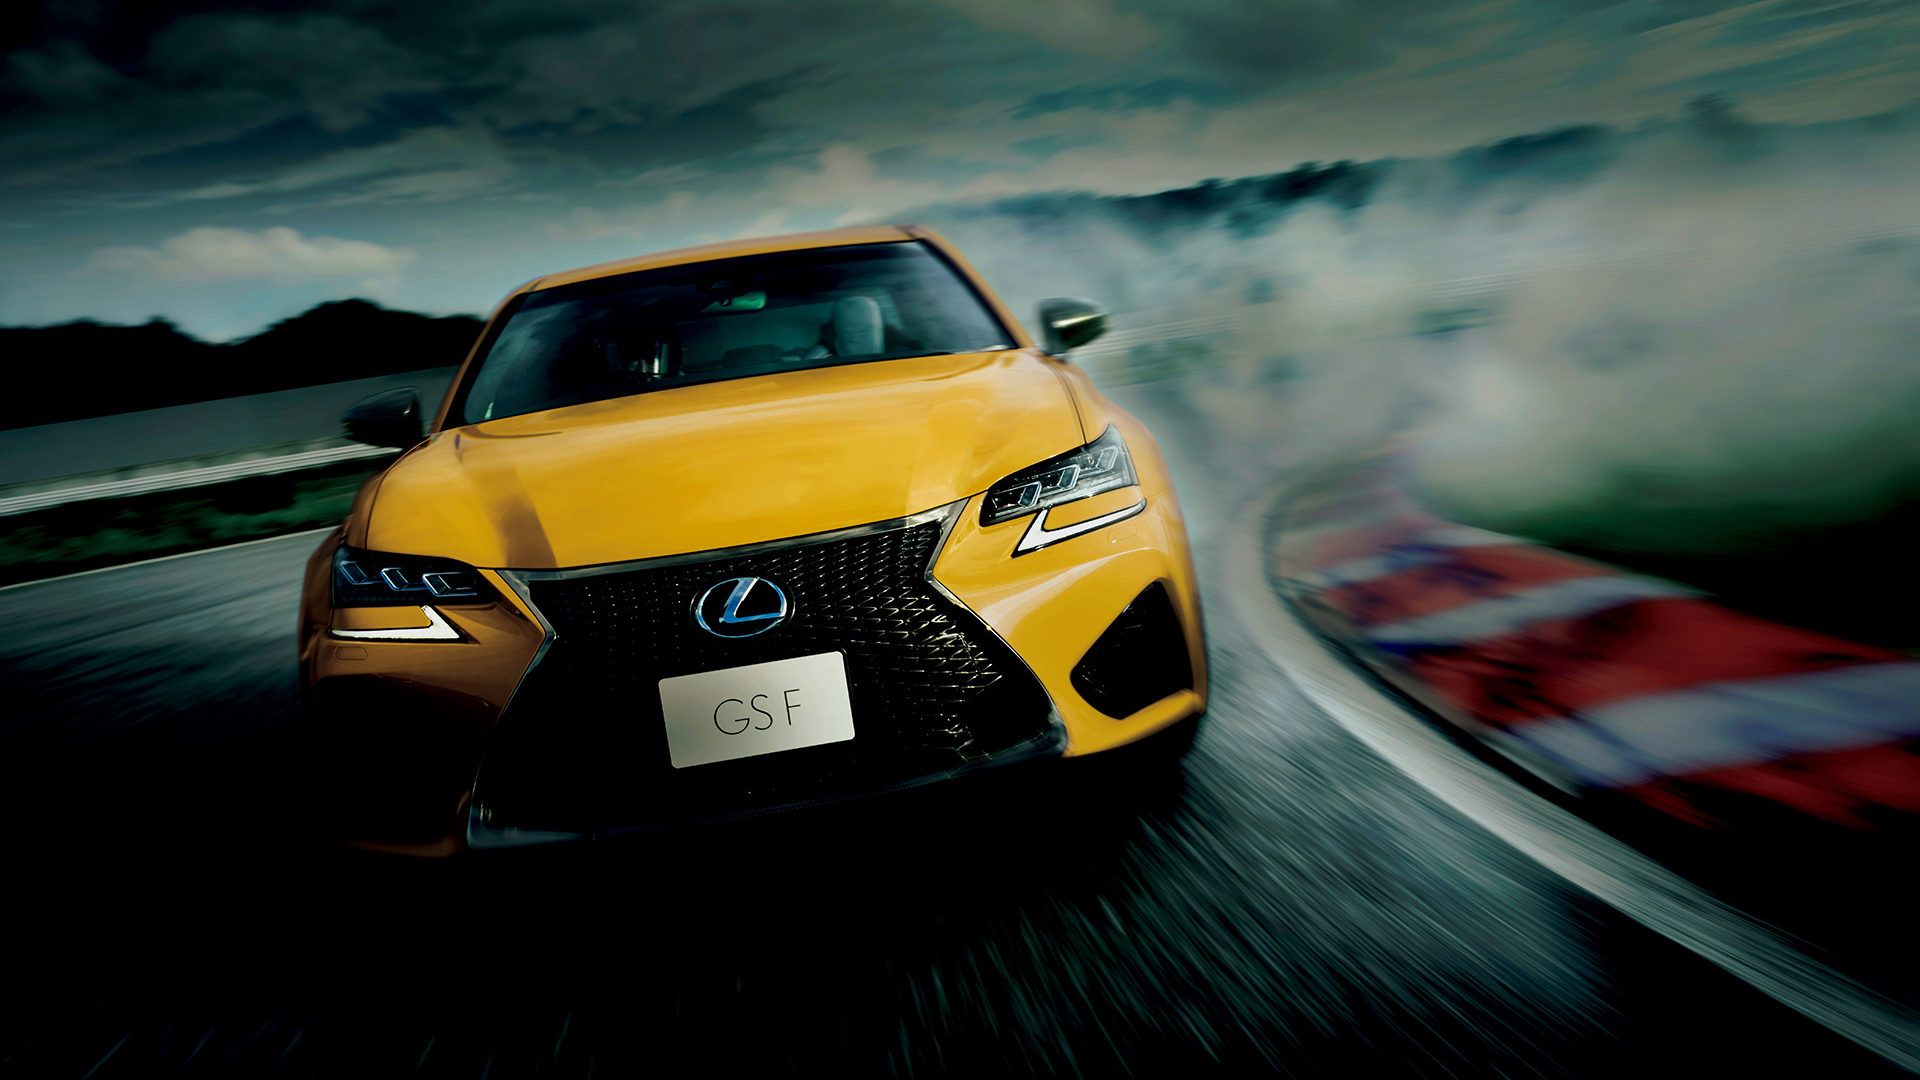 2019 Lexus Gs F Adds Flare Yellow To Its Palette The Drive